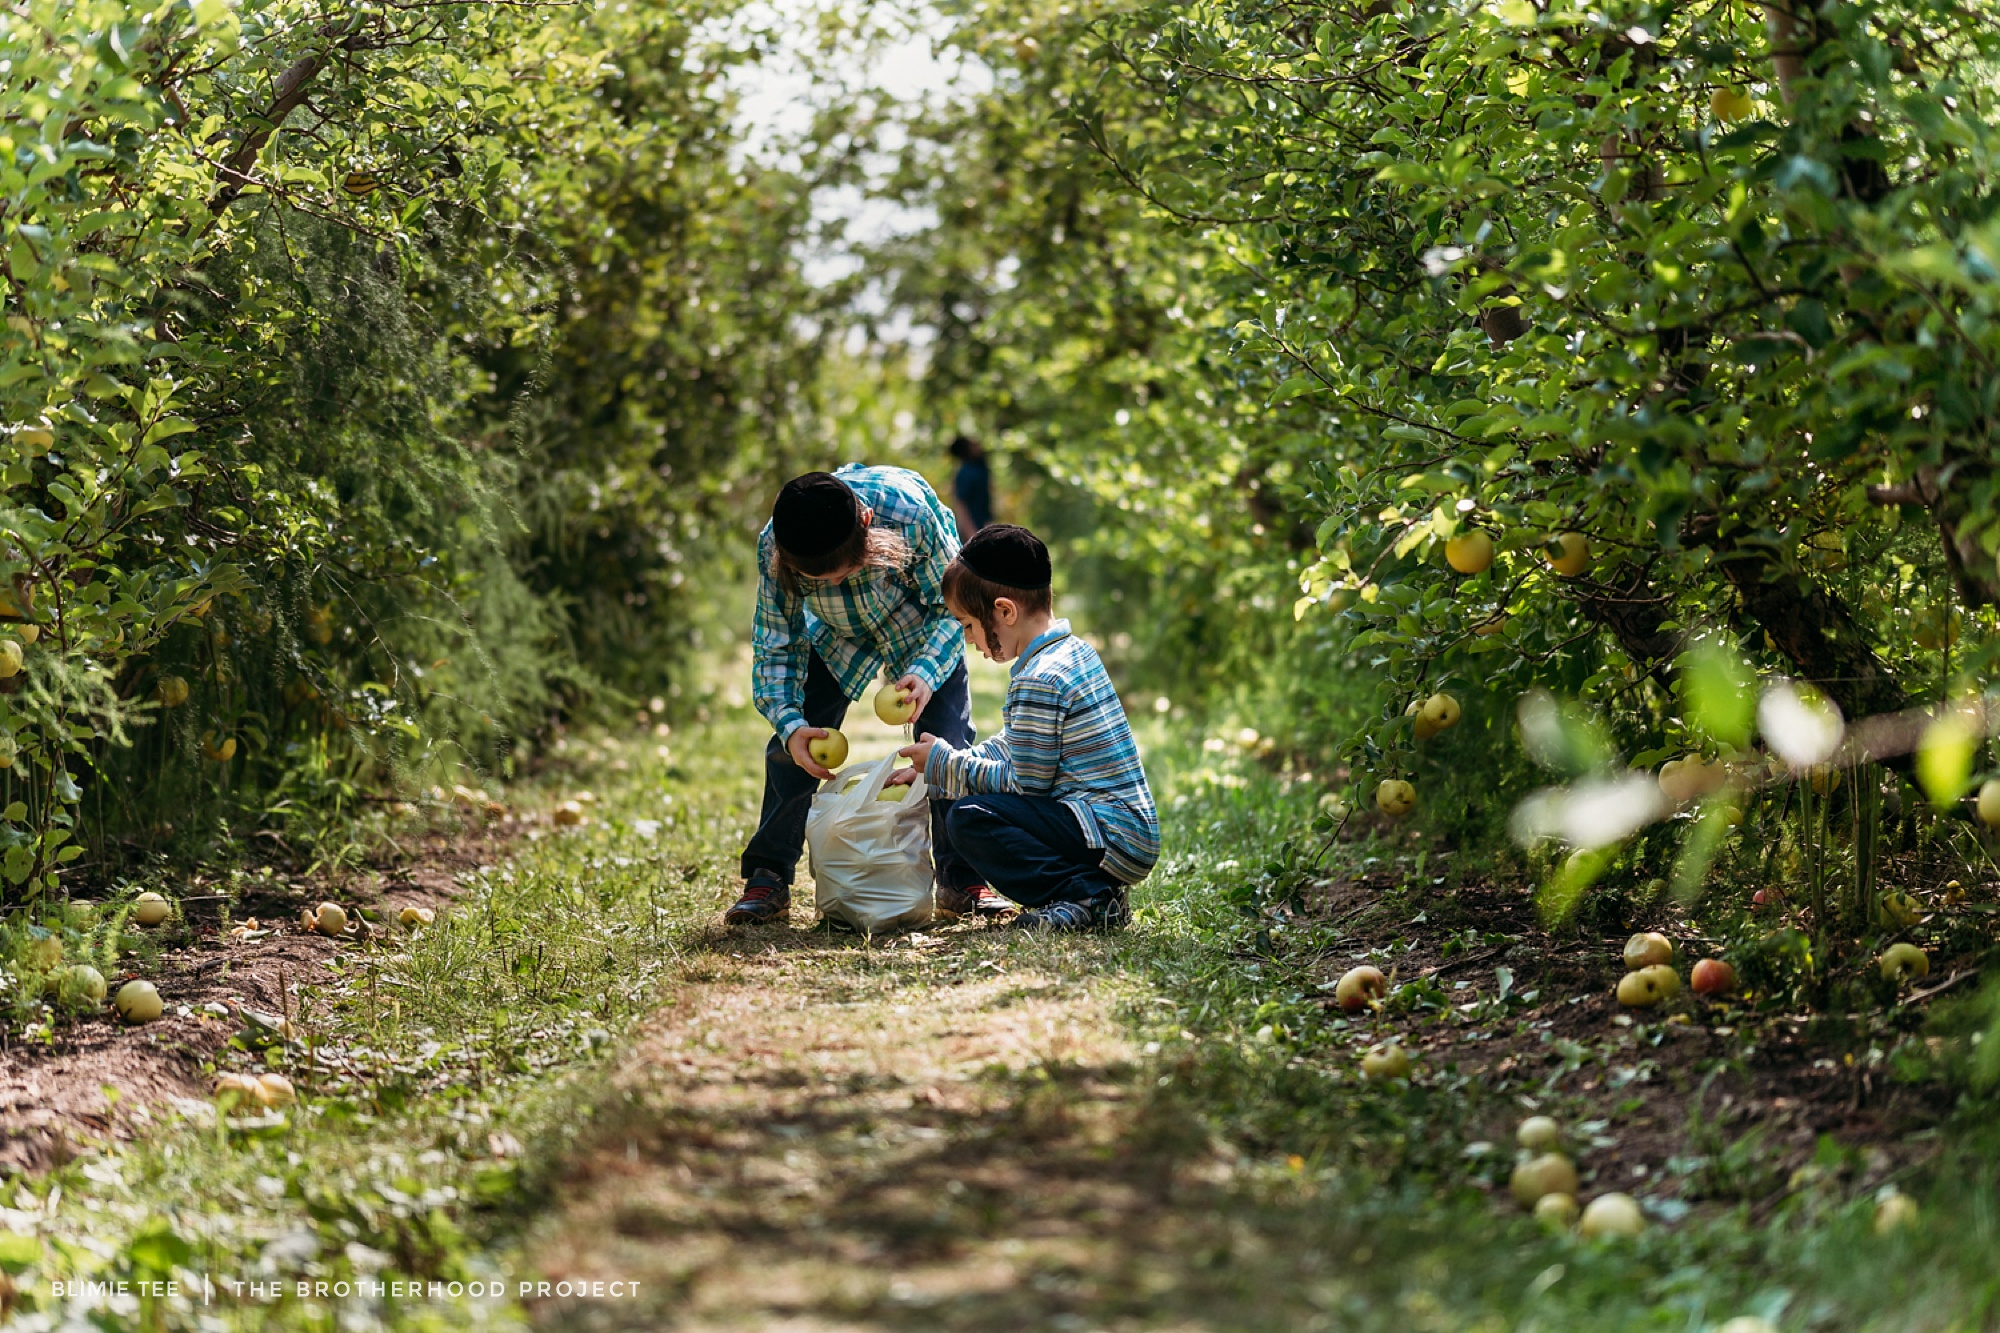 Apple Picking.  You know, you two are such different personalities and most days manage to rub each other the wrong way. Seeing you work cooperatively, helping each other, and enjoying spending time in nature, gives me the little boost of energy I need (until the next one 😊)